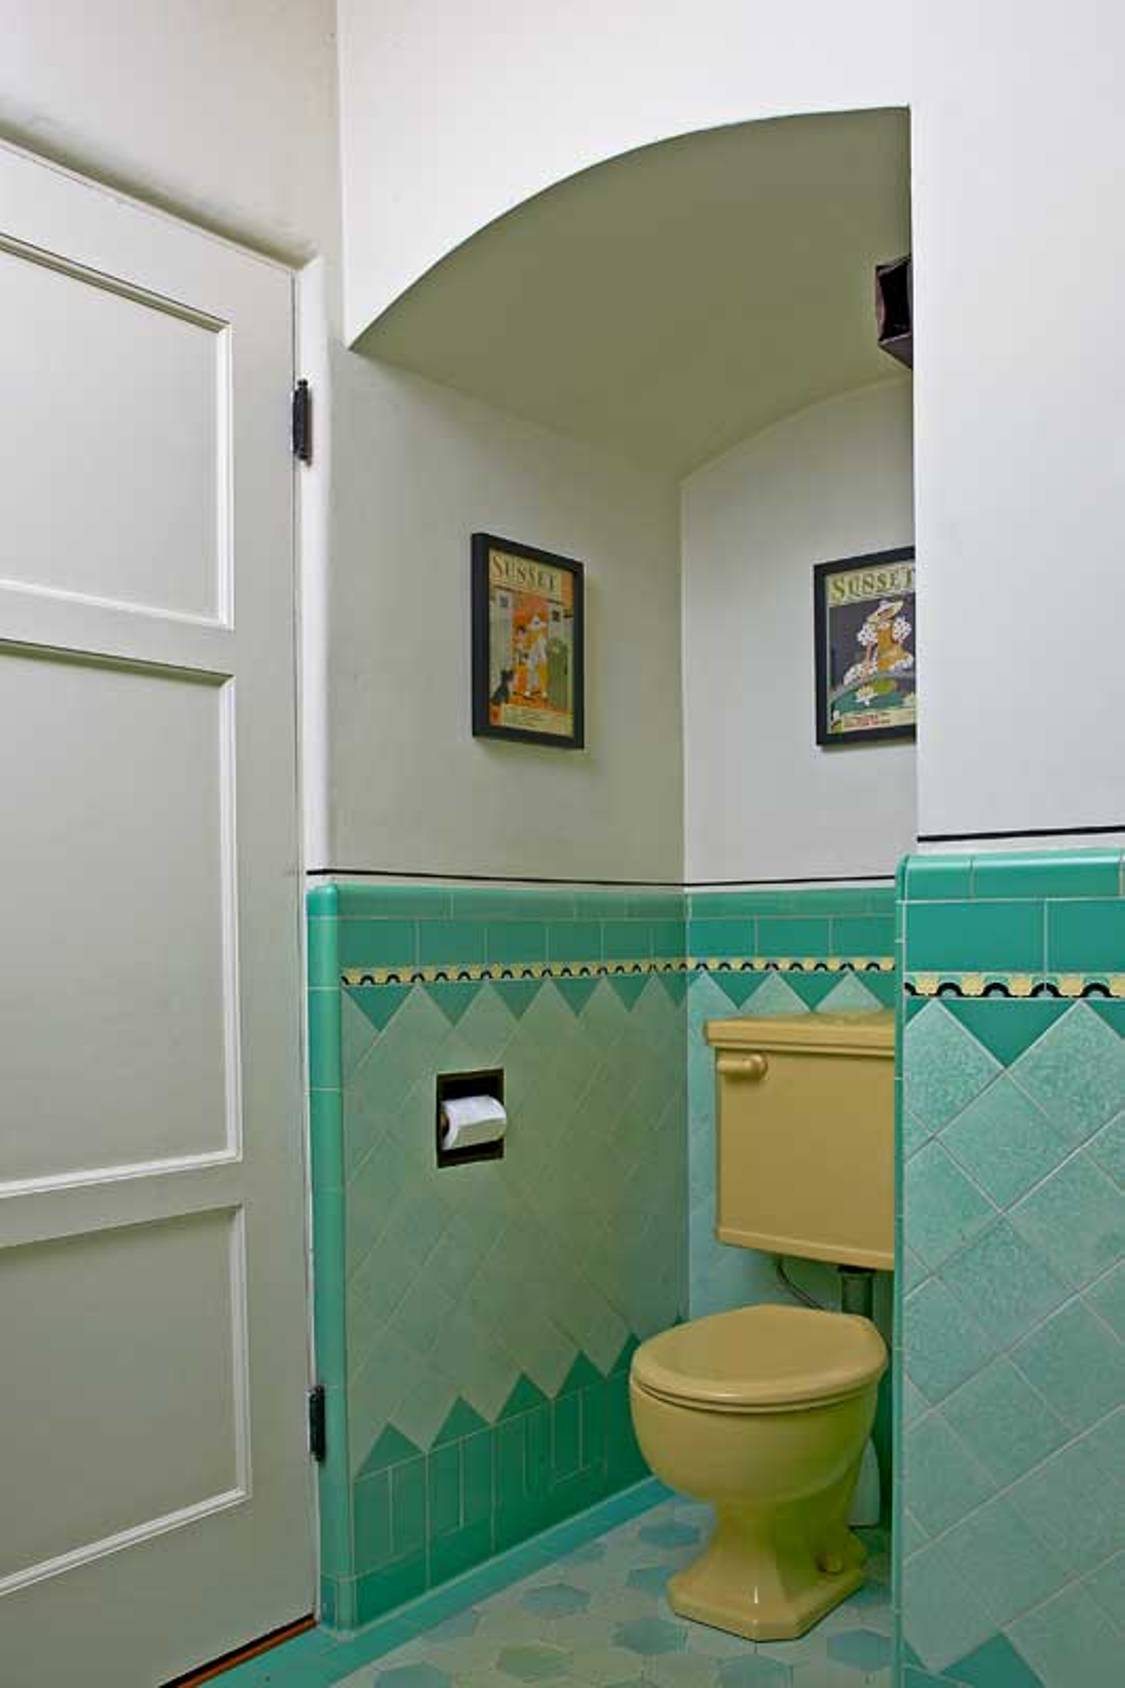 art-deco-bathroom-with-old-yellow-toilet-and-blue-tiles